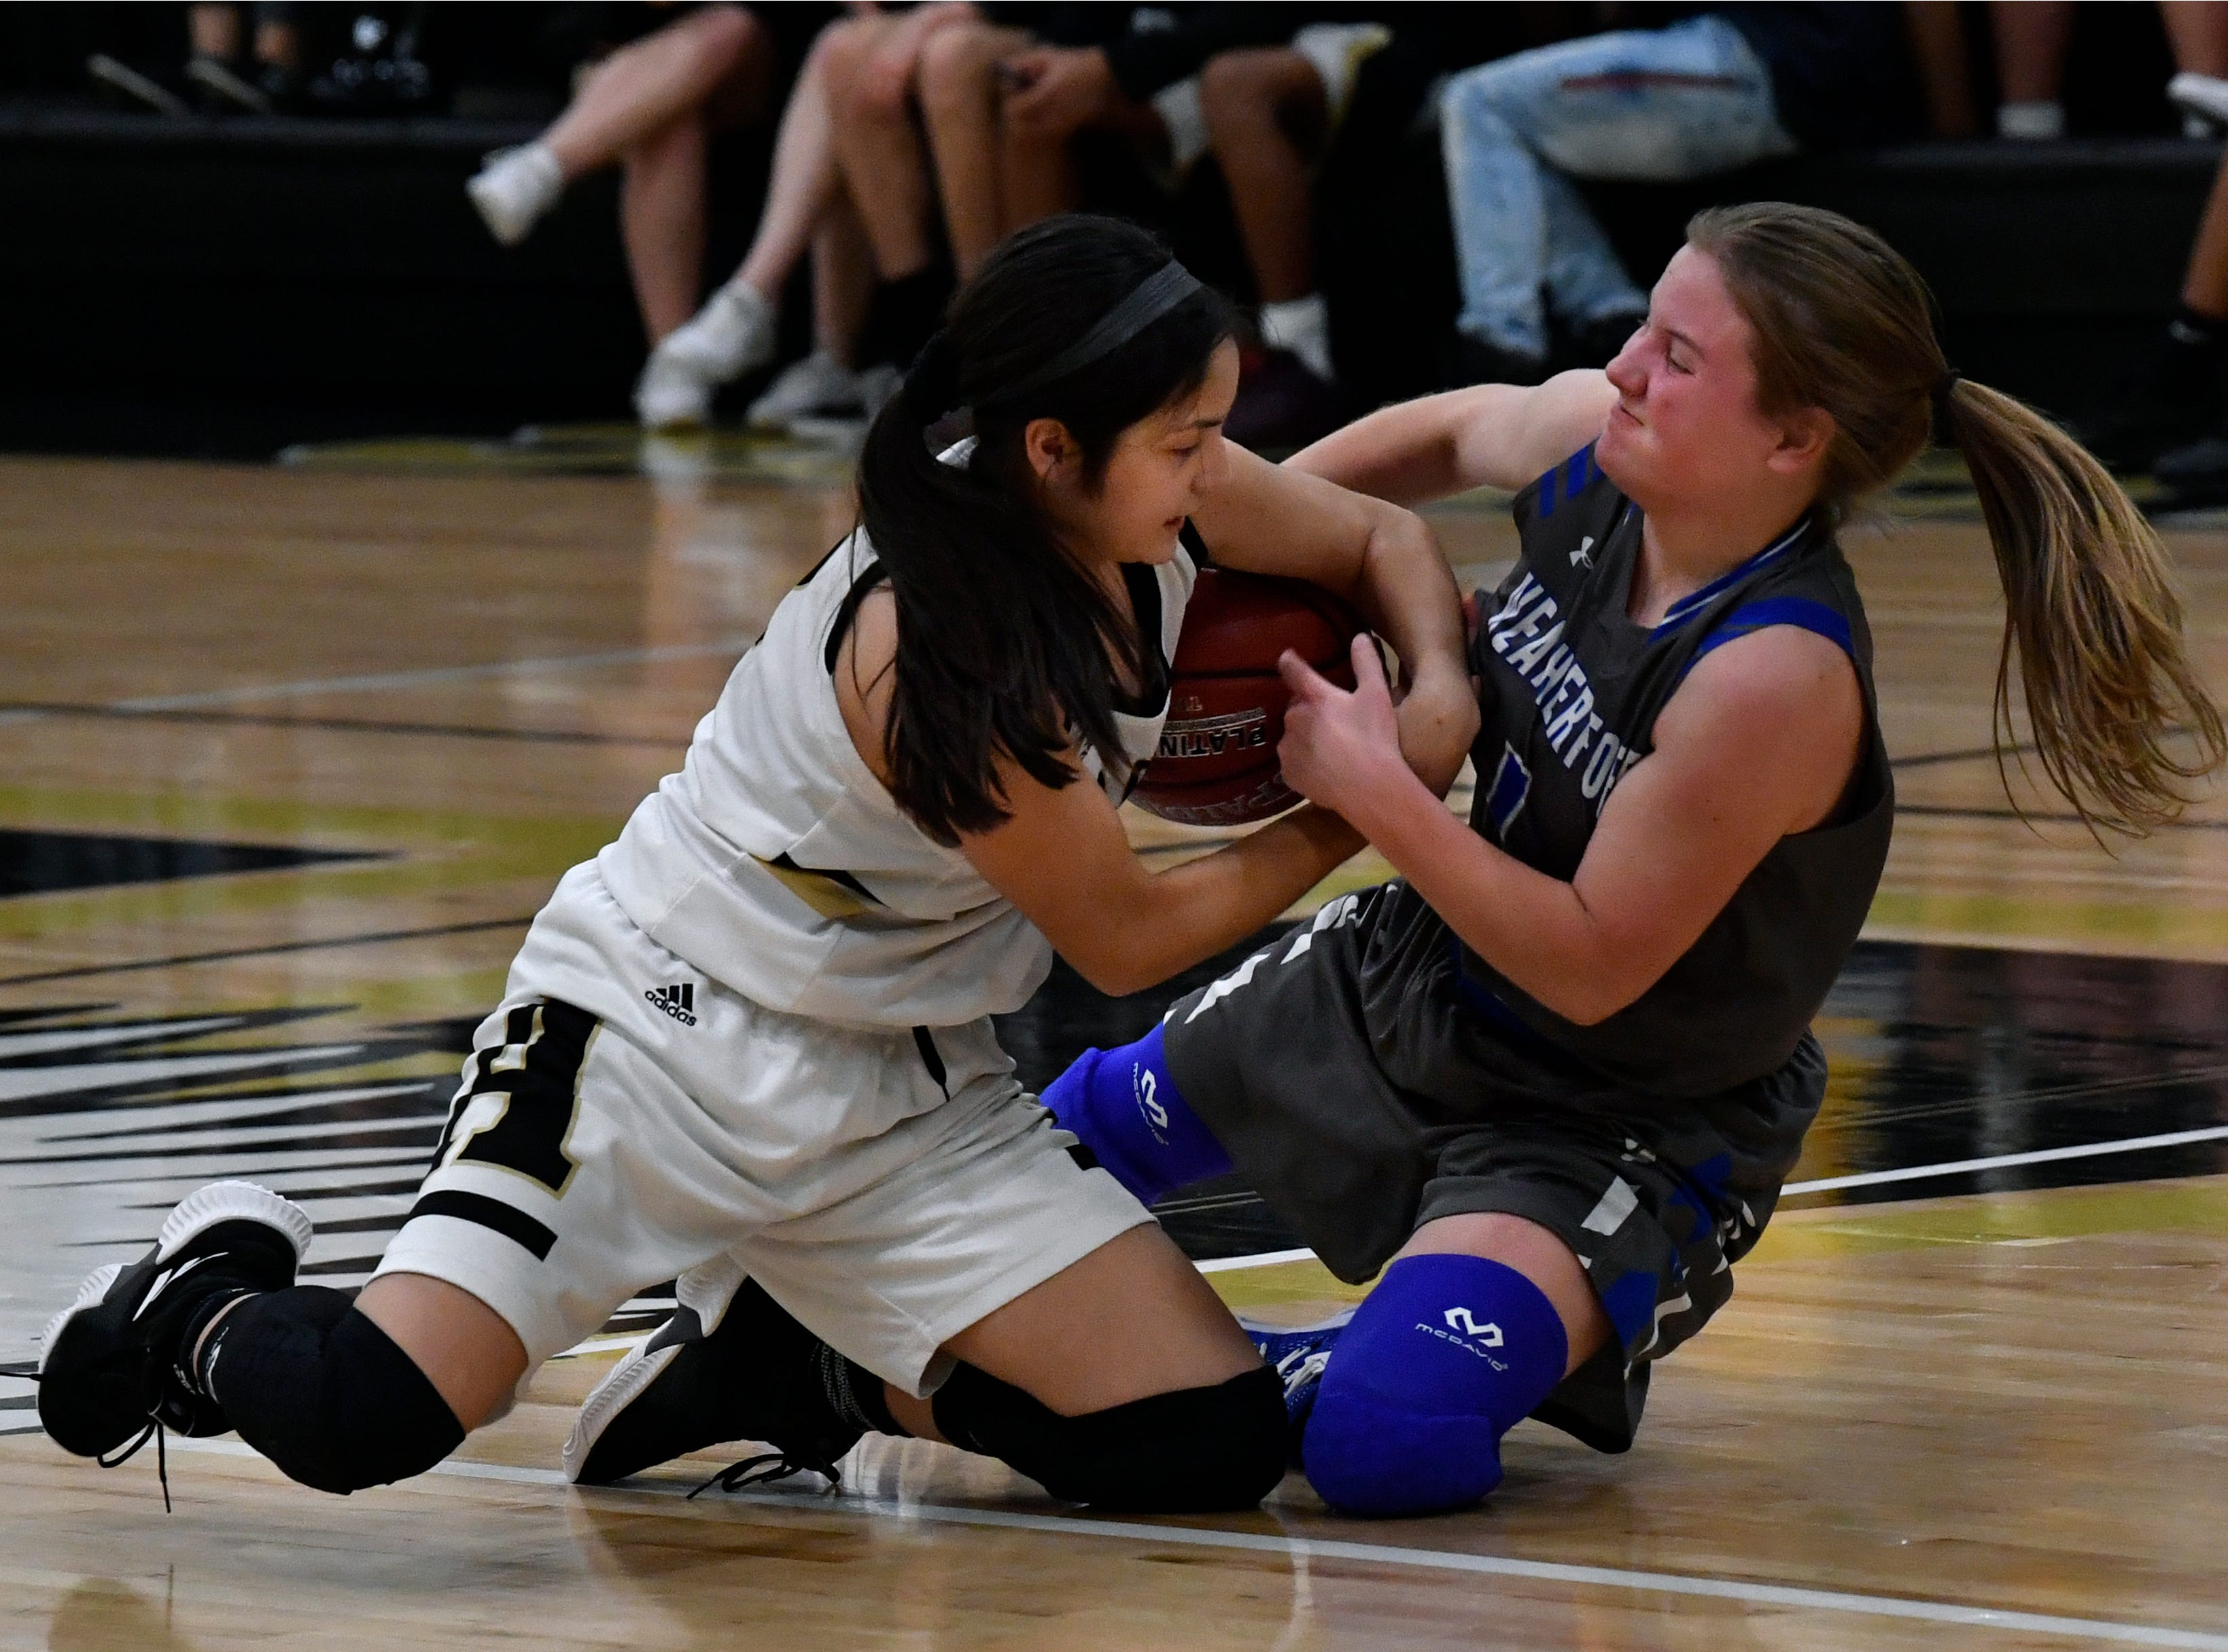 The Lady Eagles' Leila Musquiz pulls the ball from Weatherford's Emma Clark during Friday's basketball game at Abilene High Jan. 11, 2019. Final score was 51-38, Abilene.